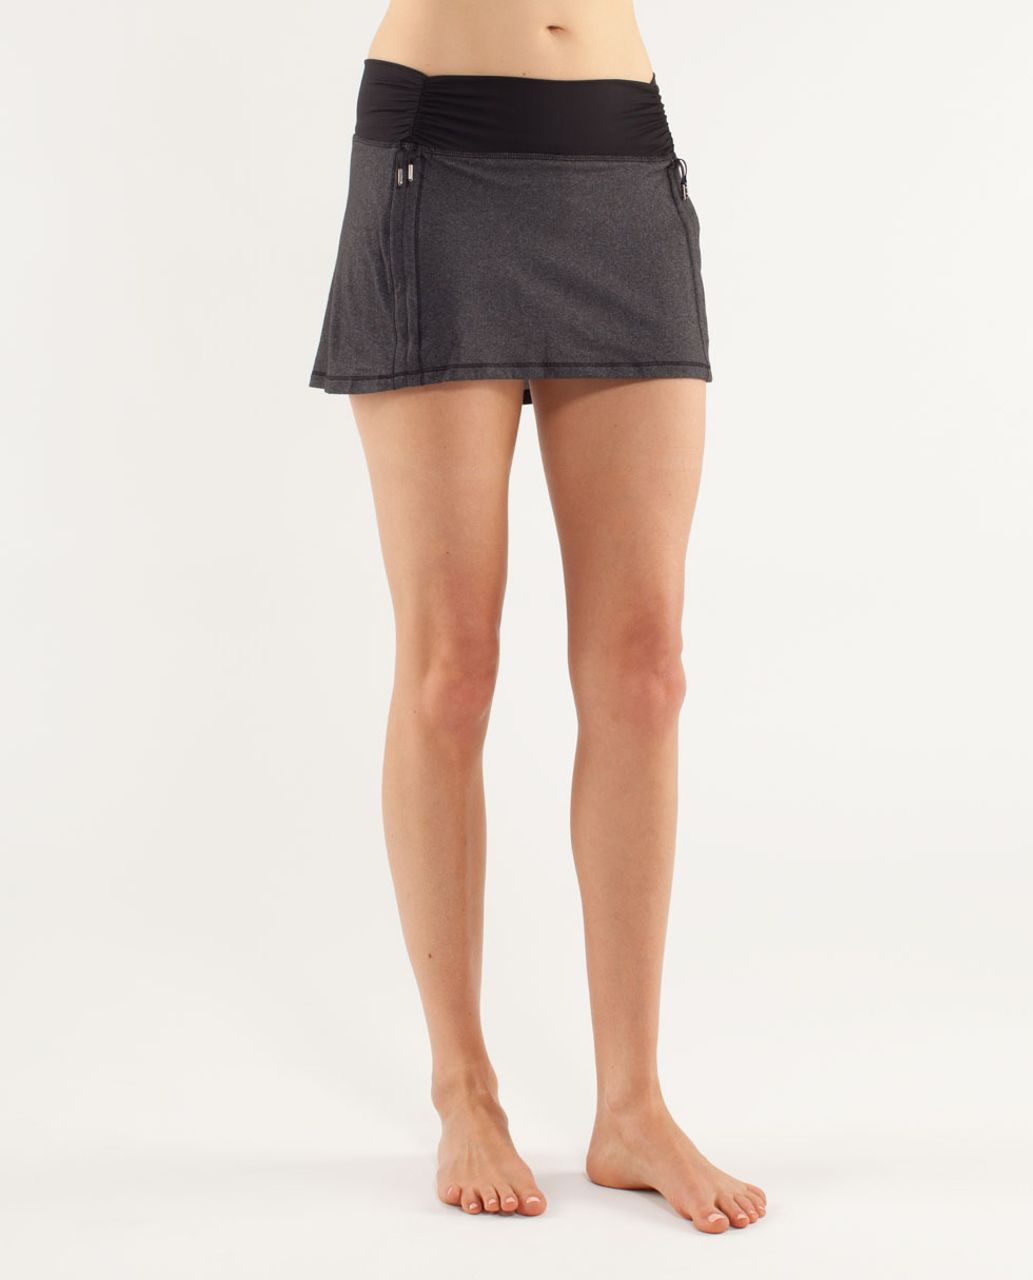 Lululemon Hot 'N Sweaty Skirt - Black